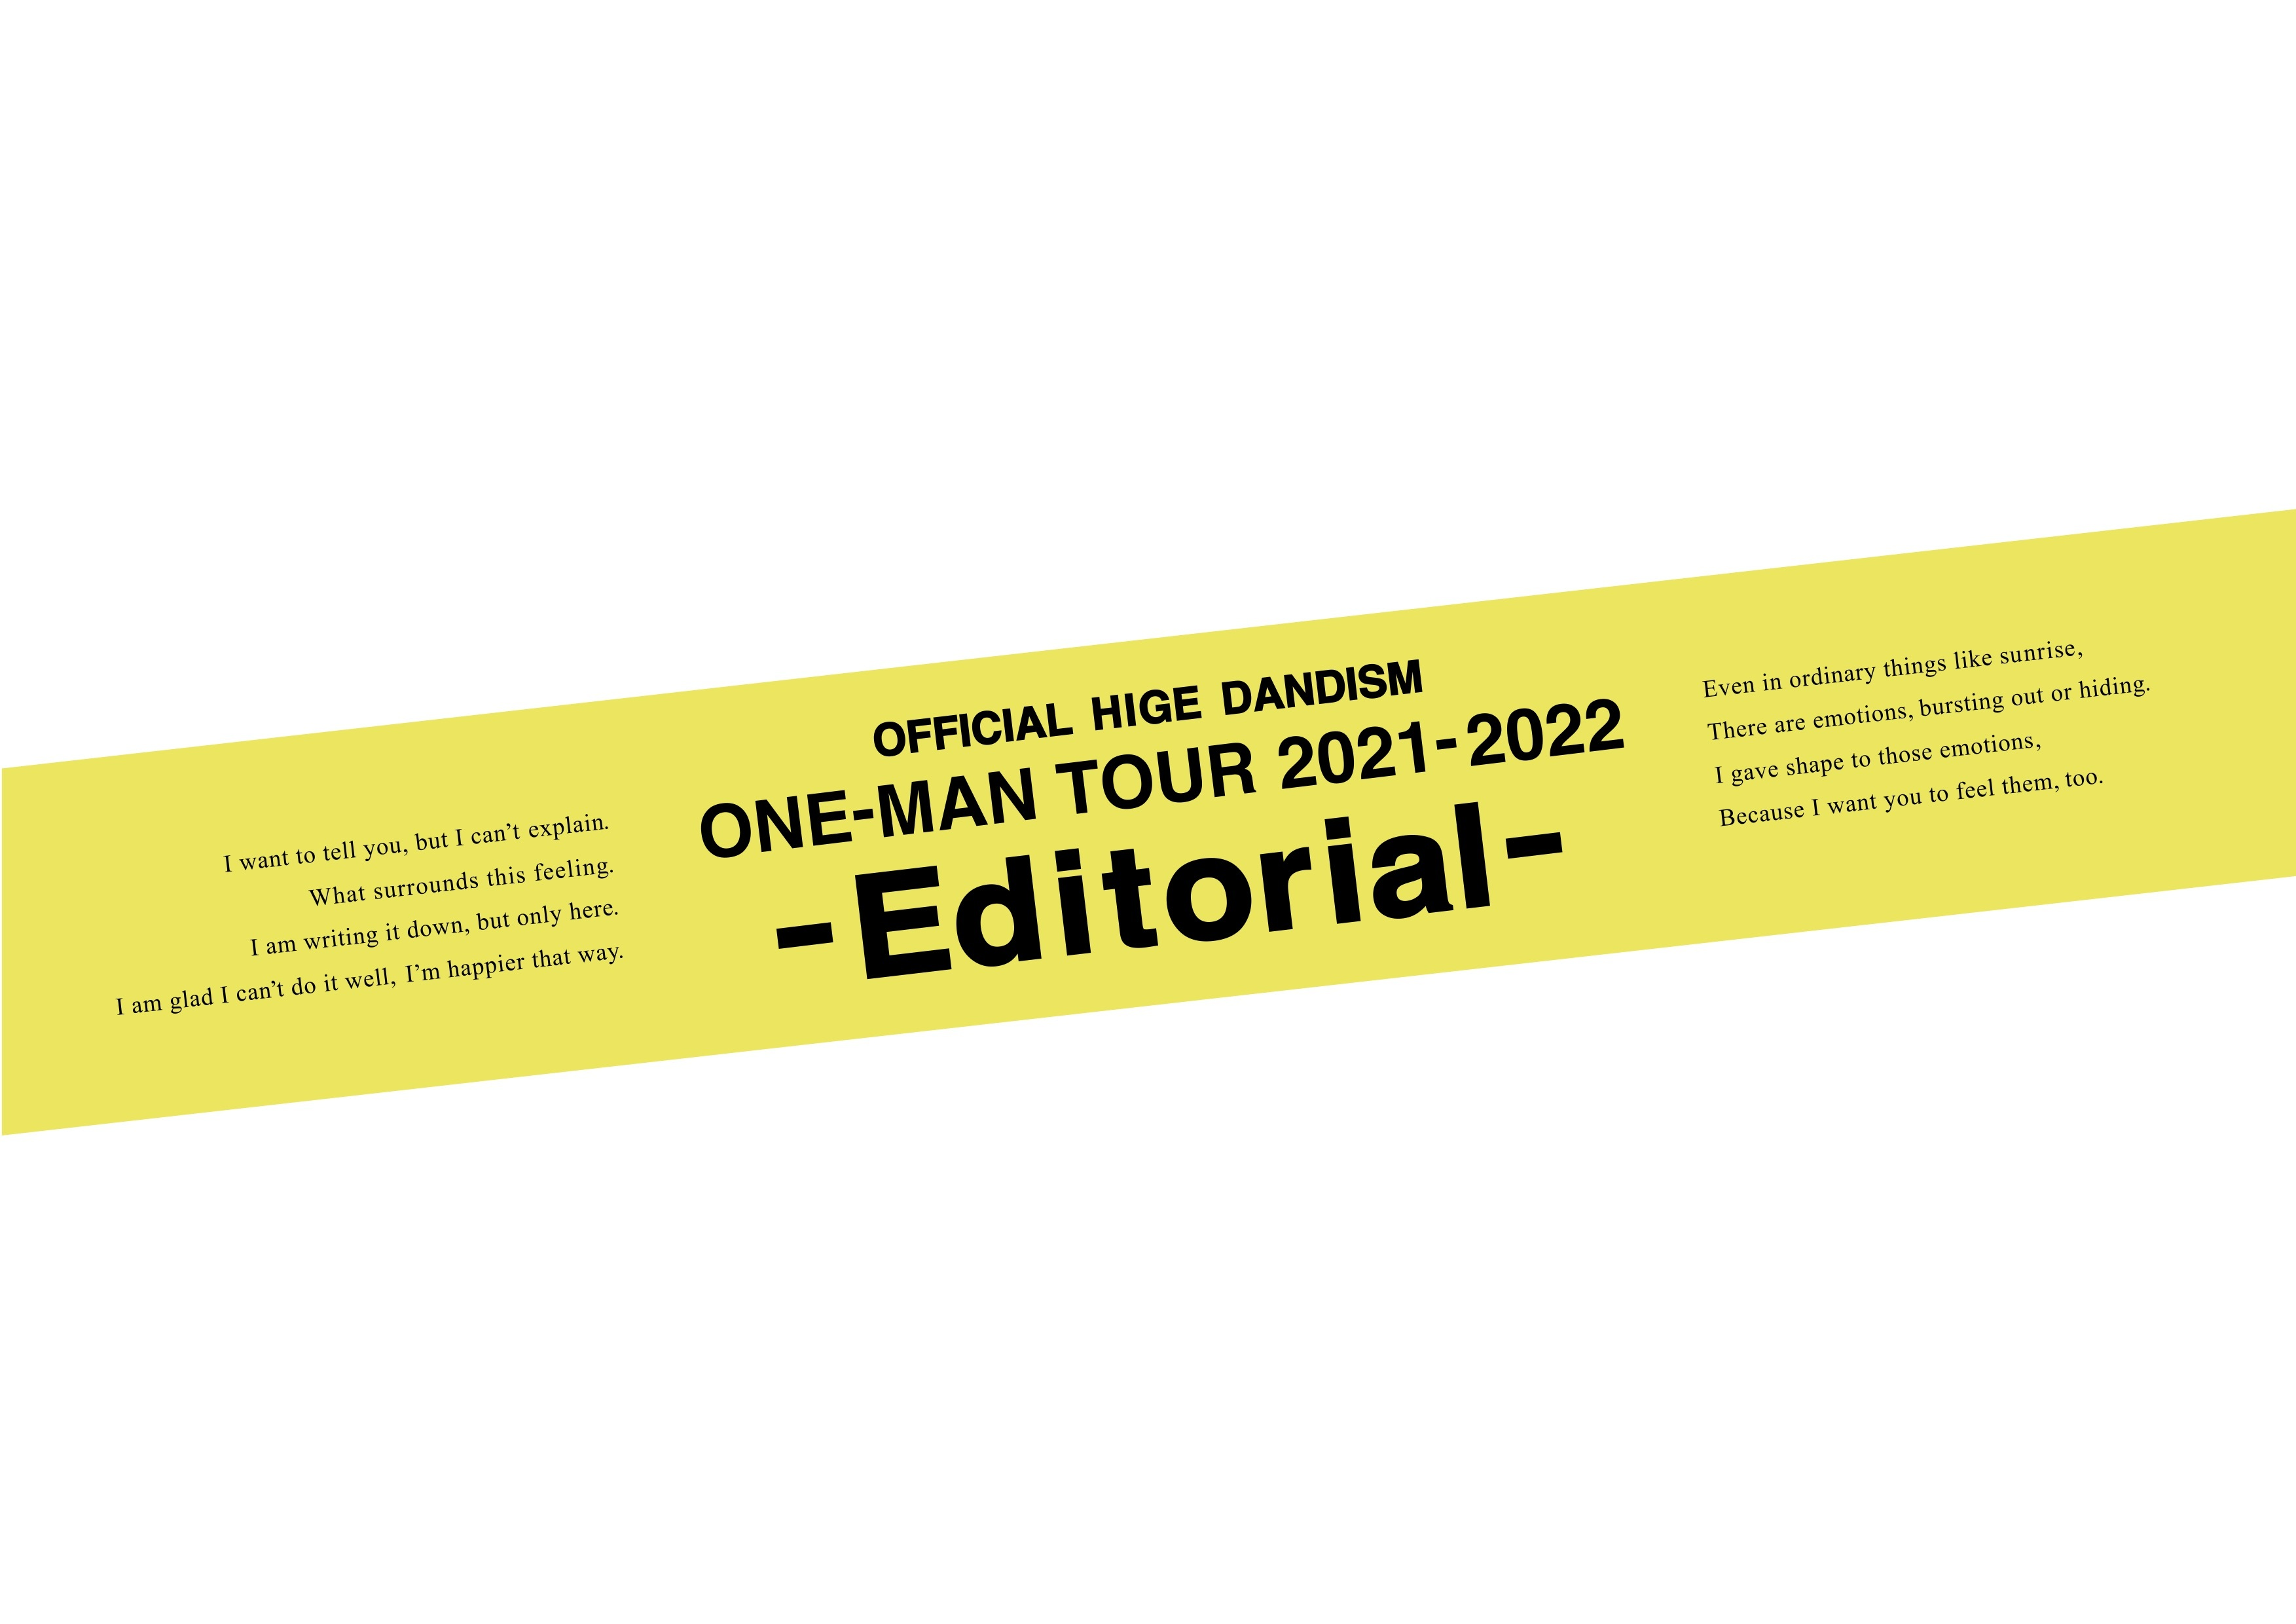 『Official髭男dism one - man tour 2021-2022 - Editorial -』ツアーロゴ